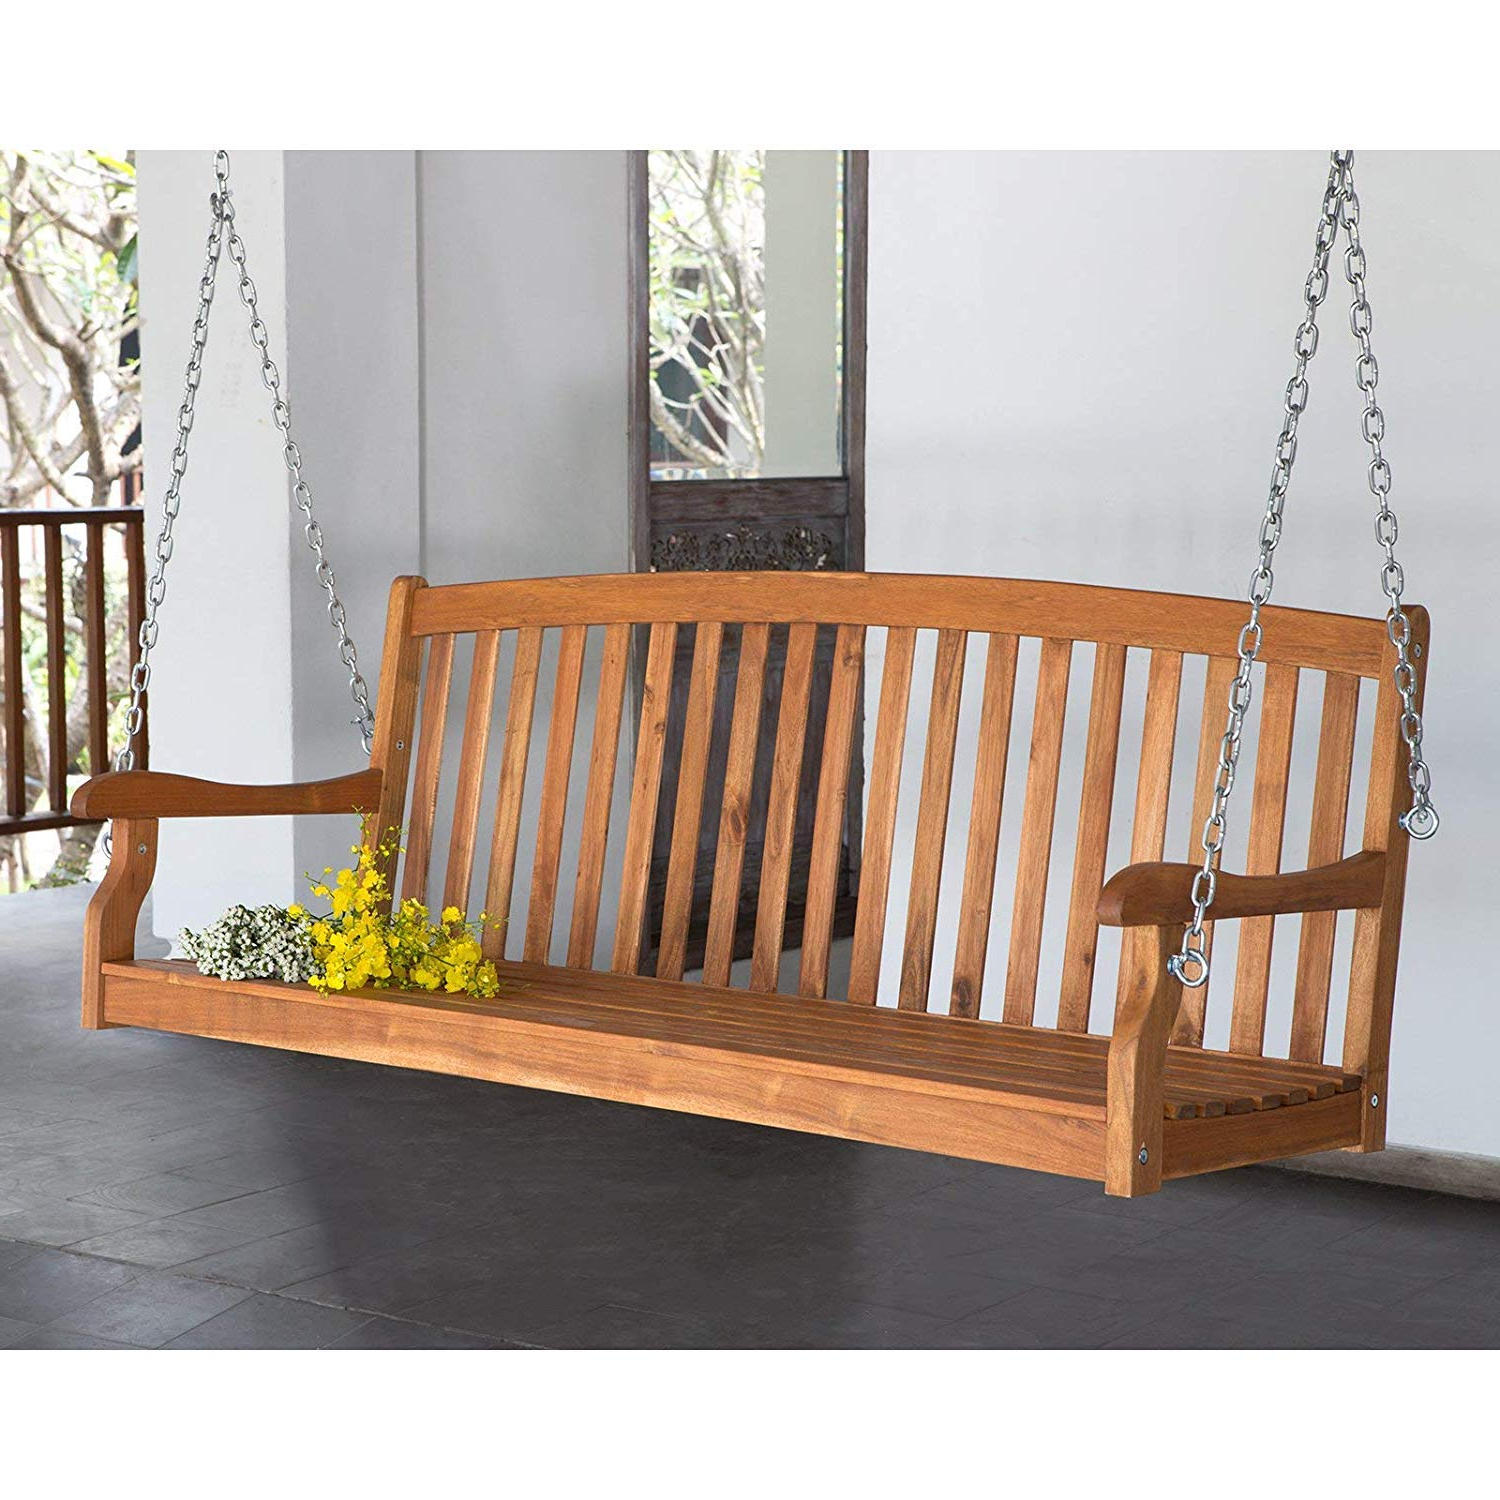 Plain Porch Swings For Well Liked Amazon : Traditional Classic Natural Finish Wood Porch (View 21 of 30)